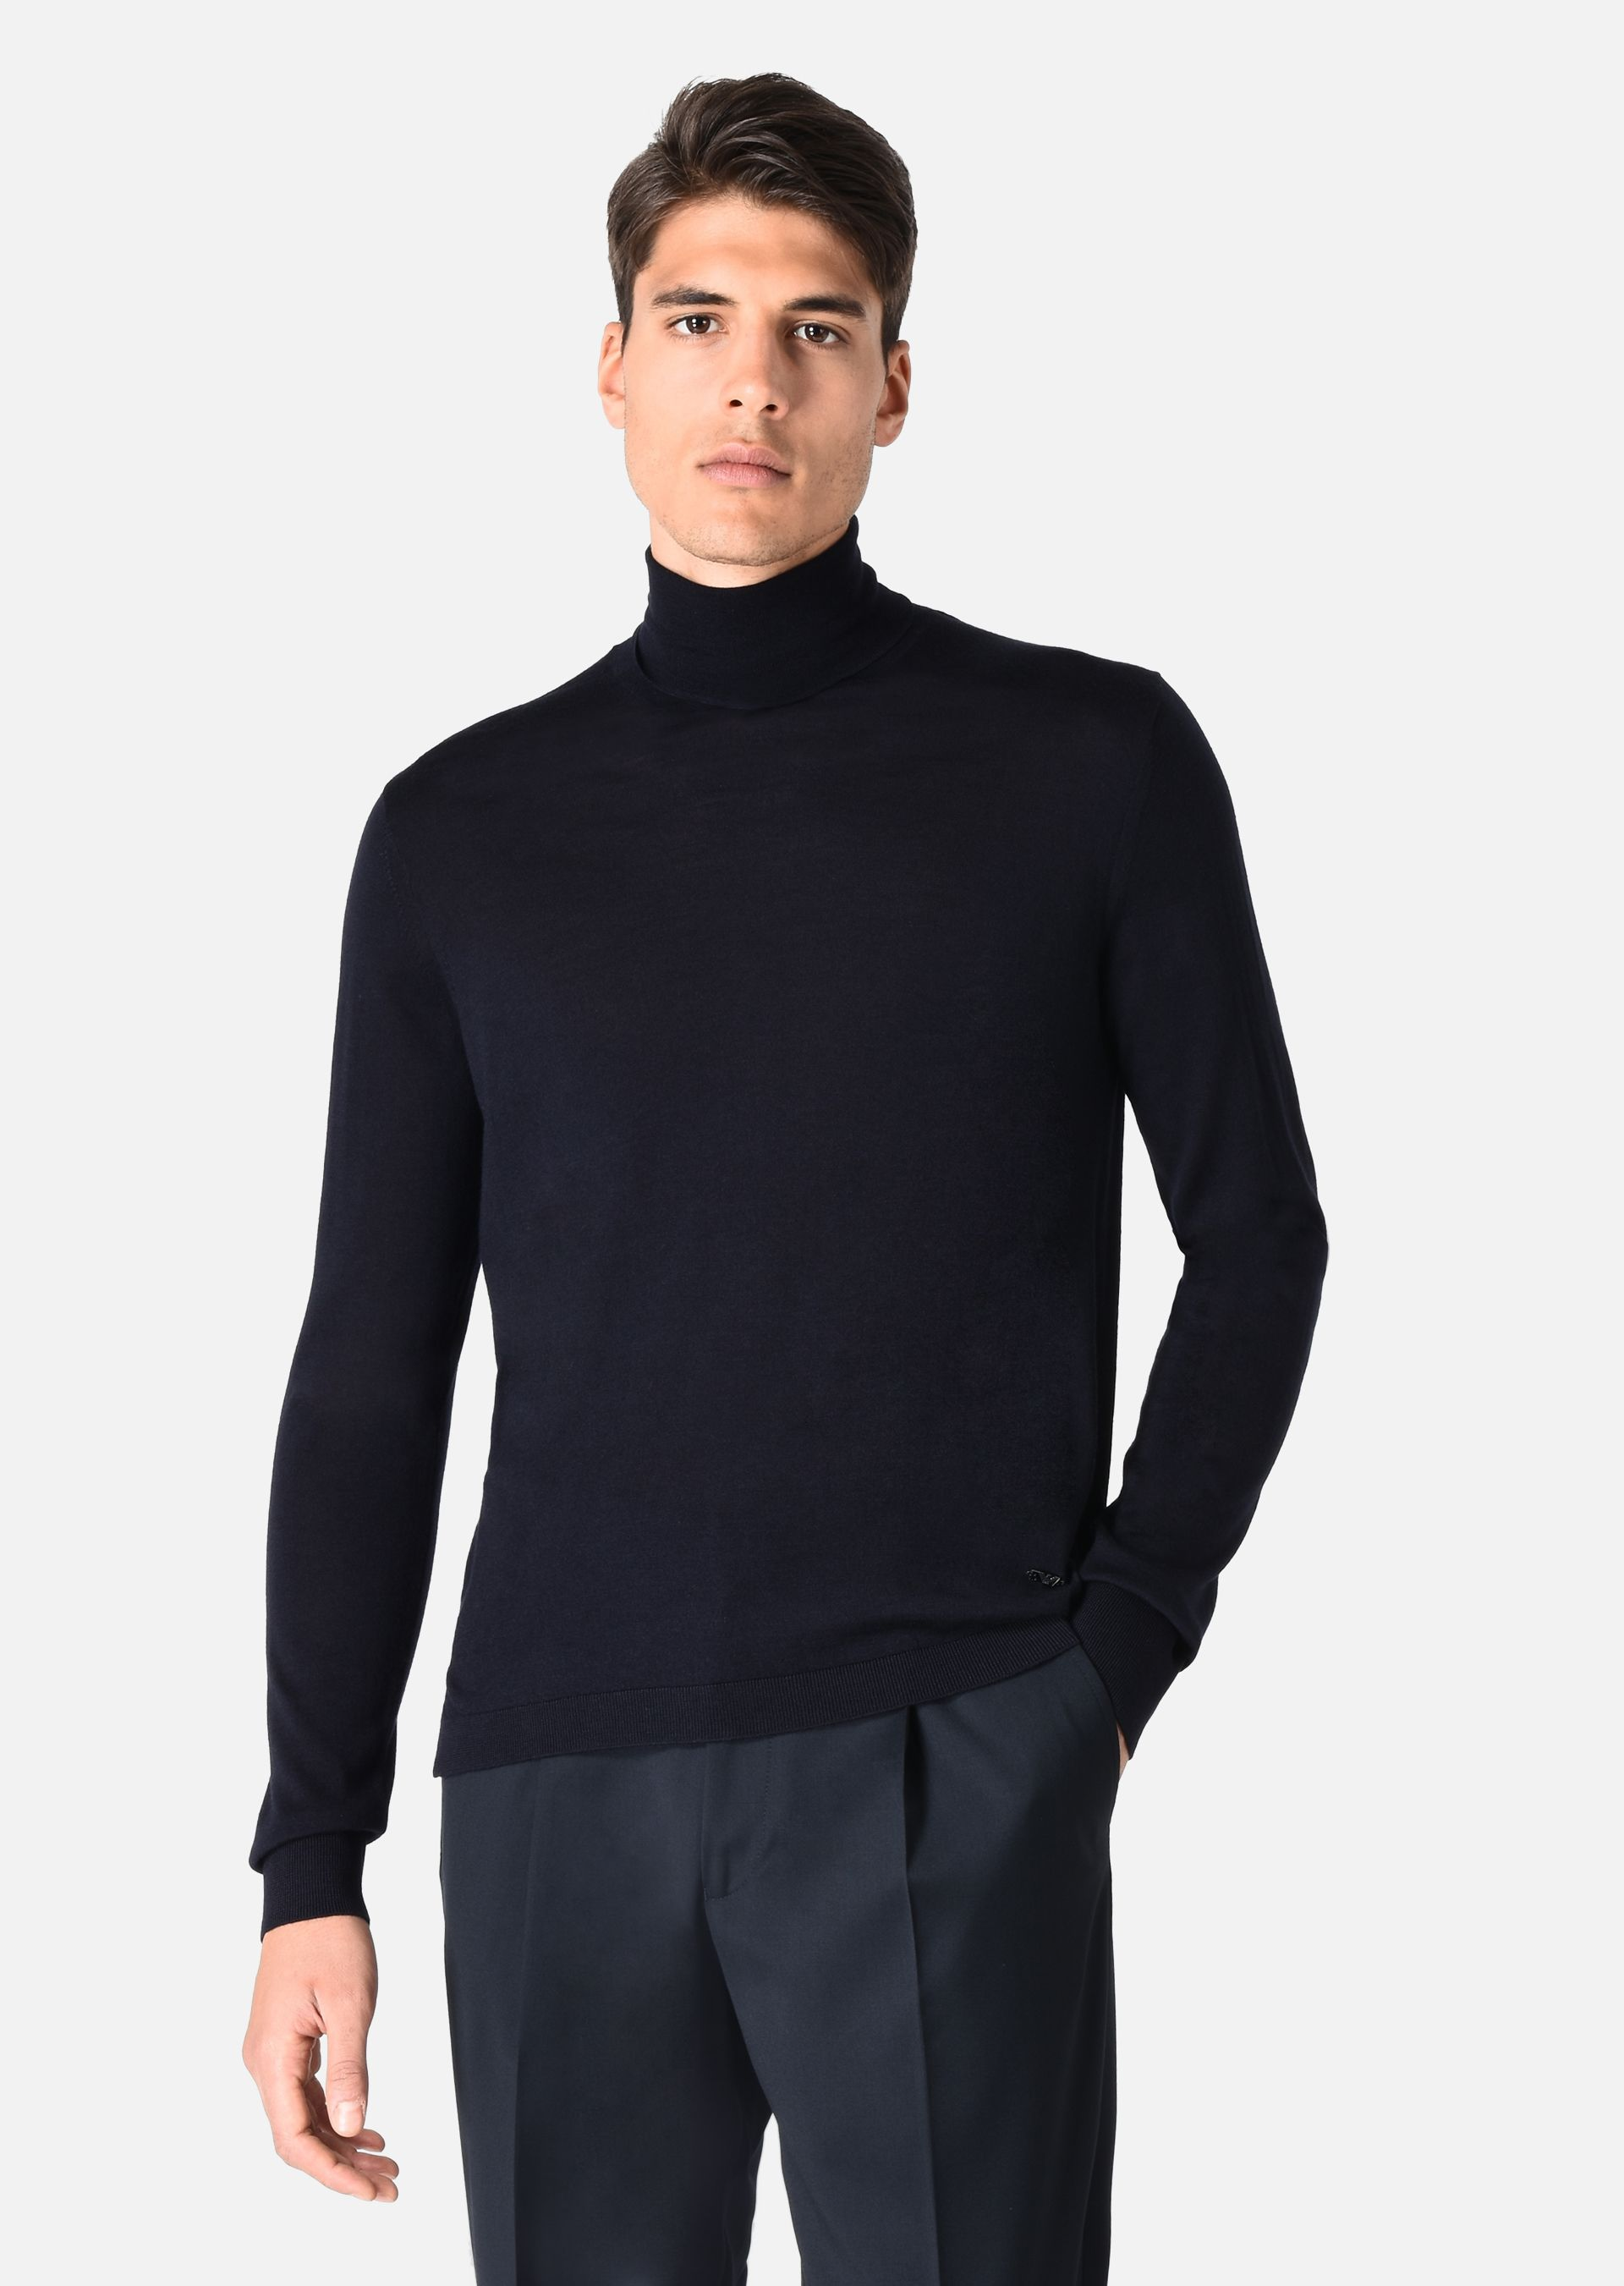 turtleneck sweater in wool jersey for men emporio armani. Black Bedroom Furniture Sets. Home Design Ideas